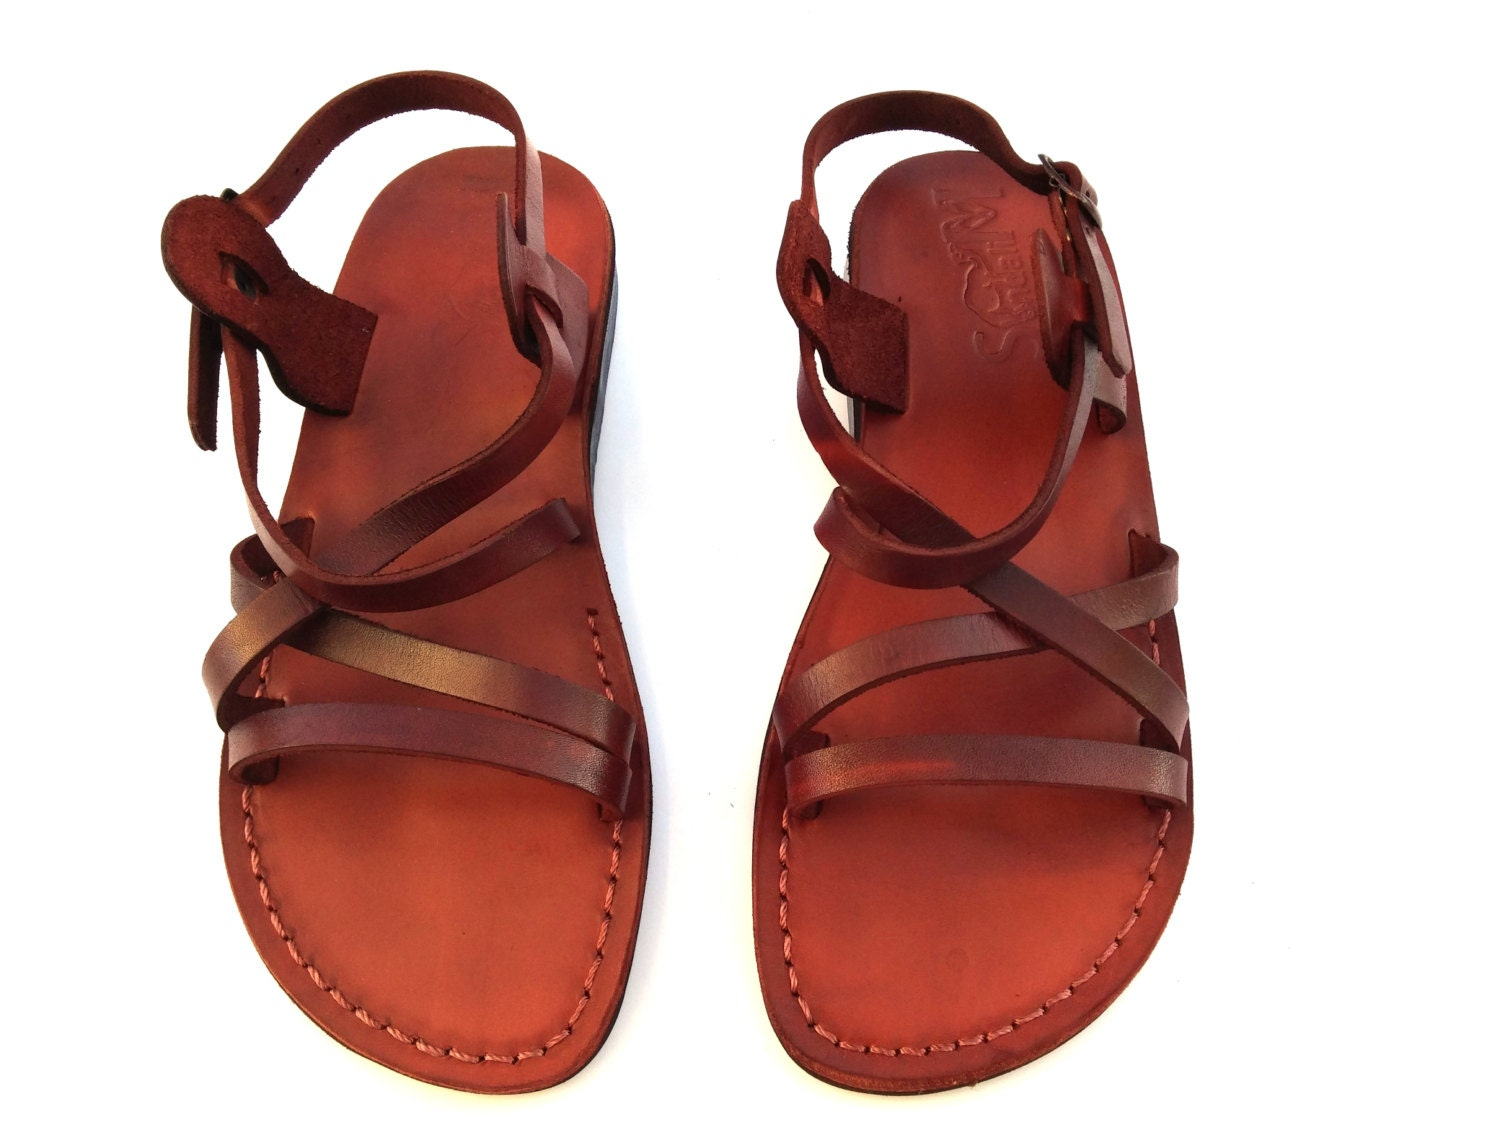 Brown Genuine Leather Strappy Sandals For Women Flip Flops